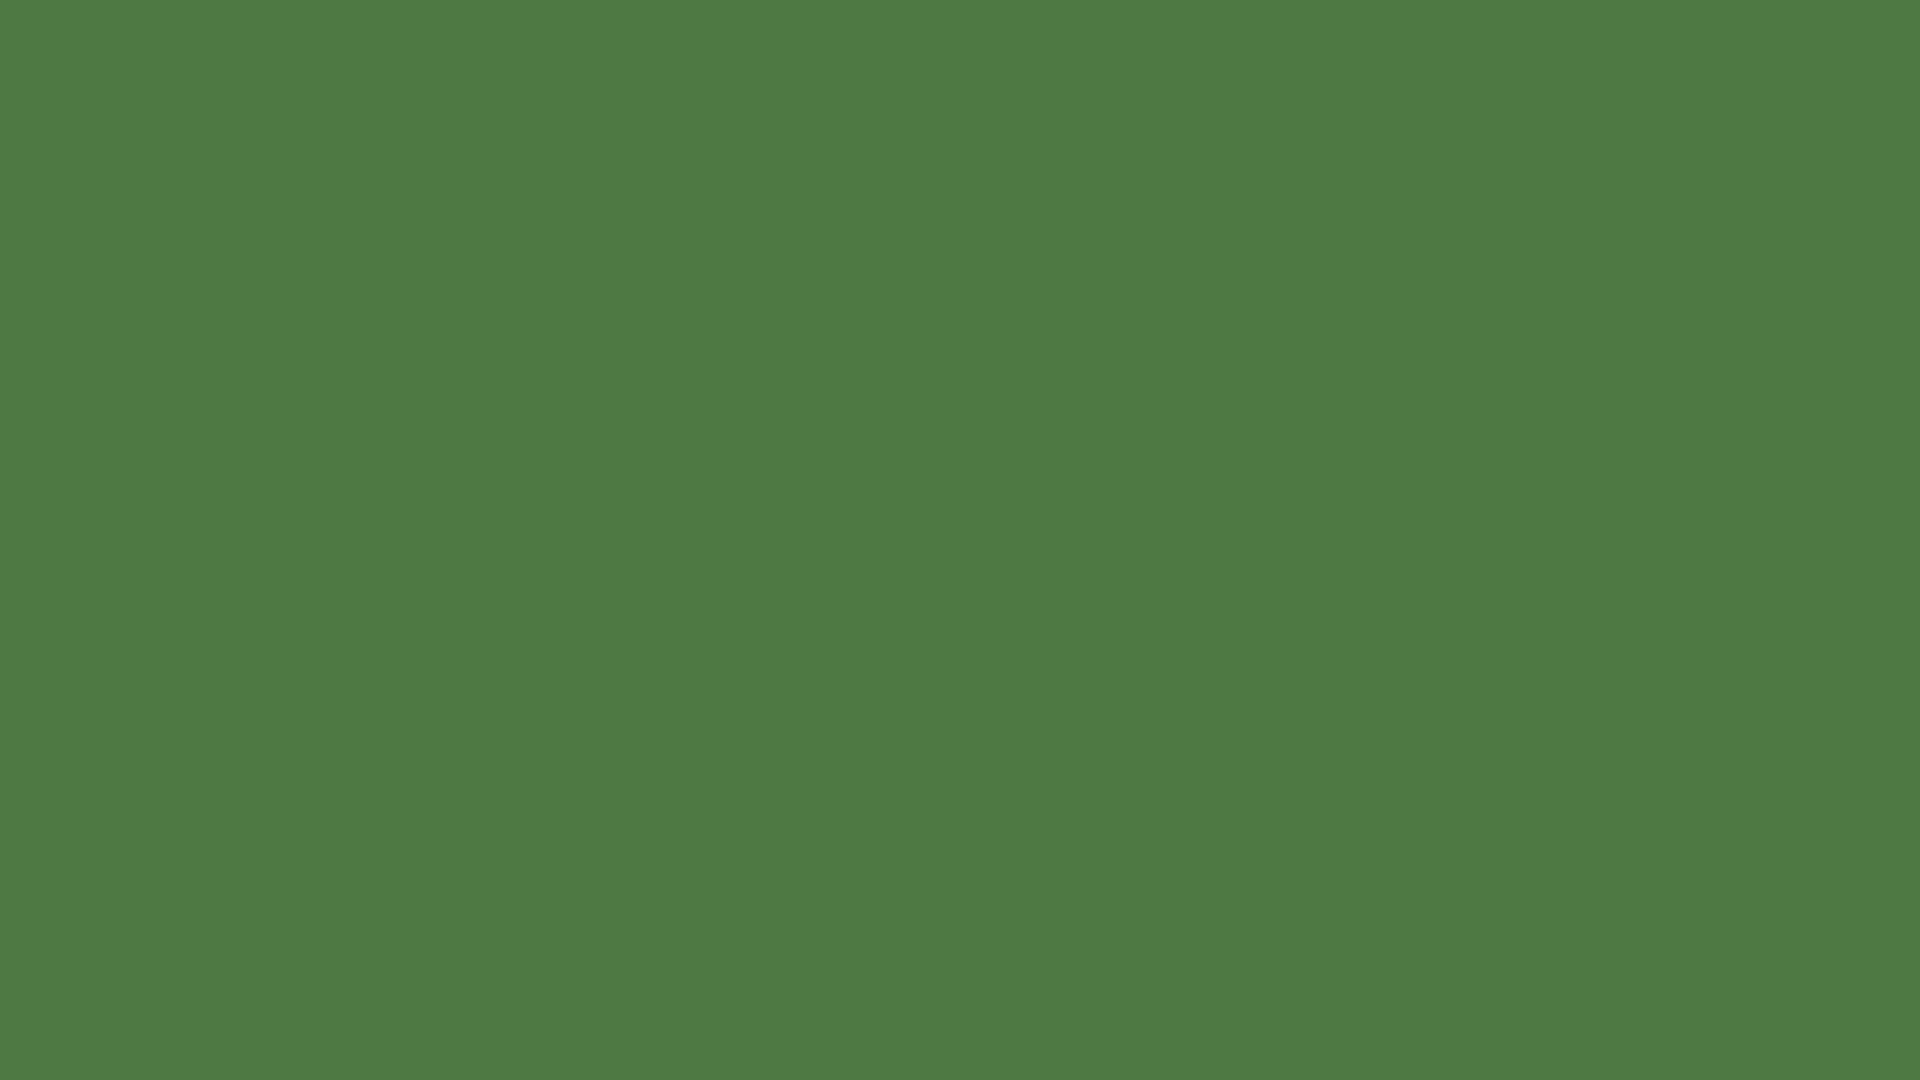 1920x1080 Fern Green Solid Color Background